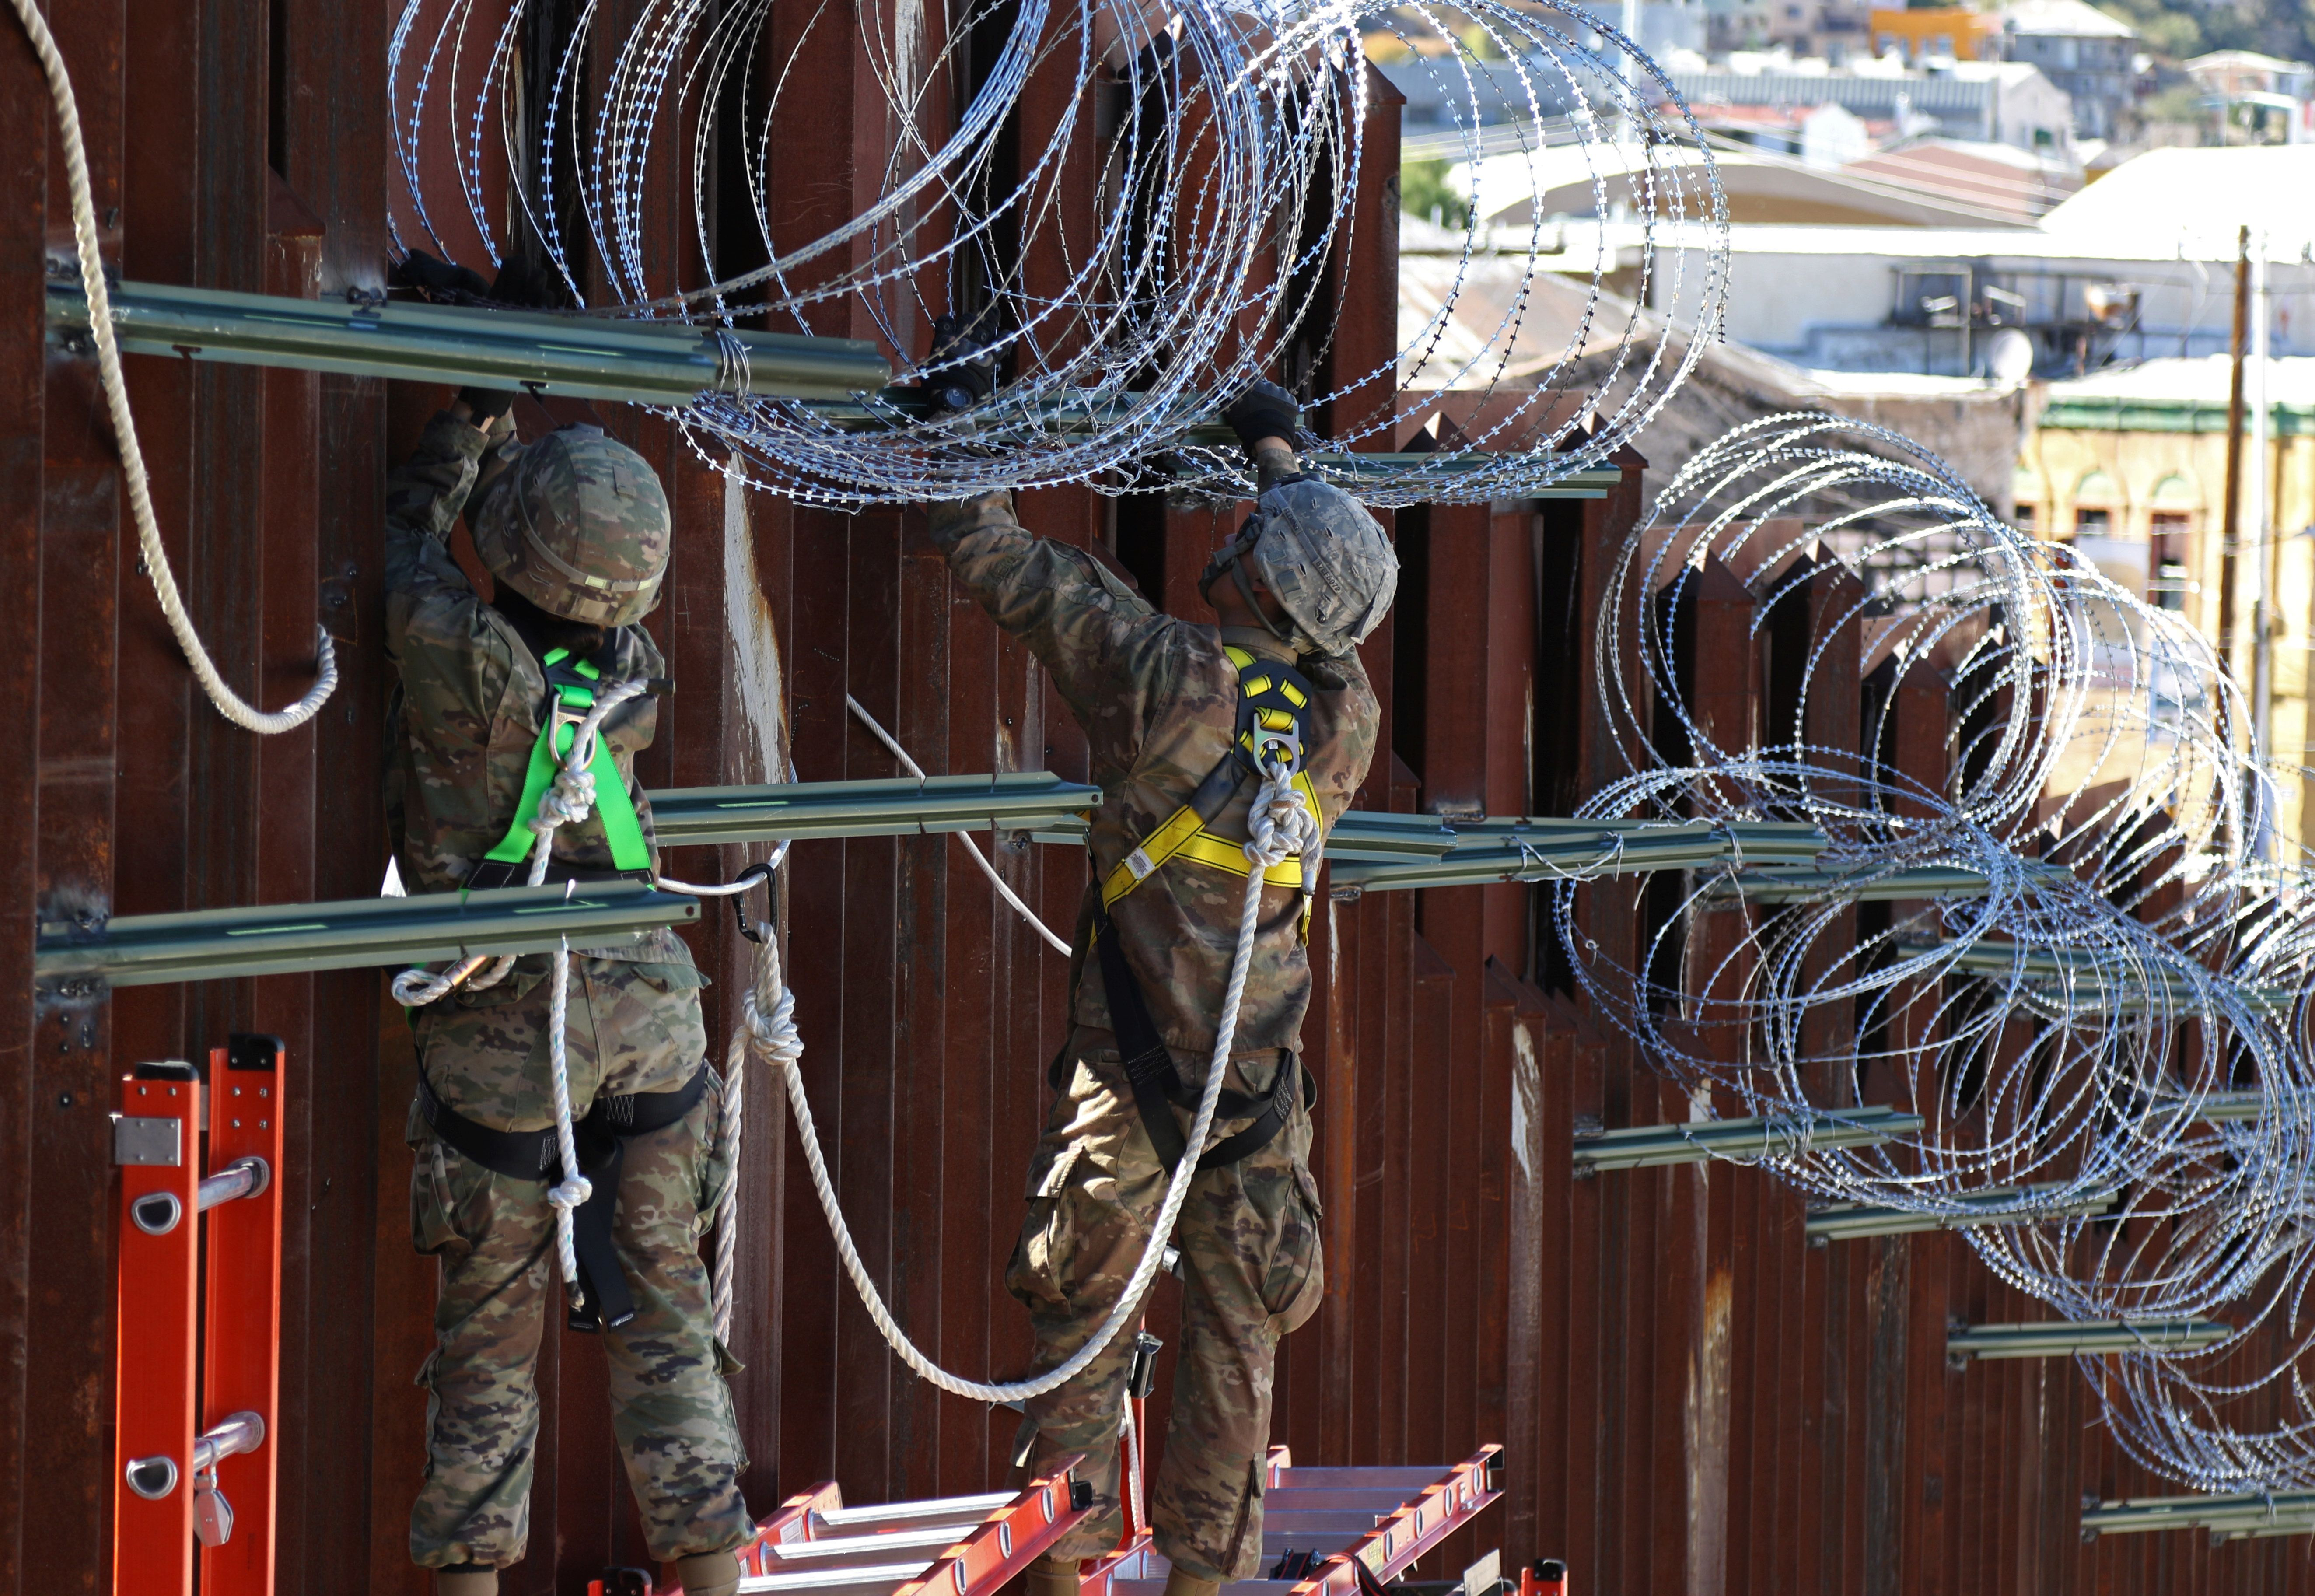 Nogales Orders Federal Officials To Remove Hideous, 'Inhuman' Razor Wire On